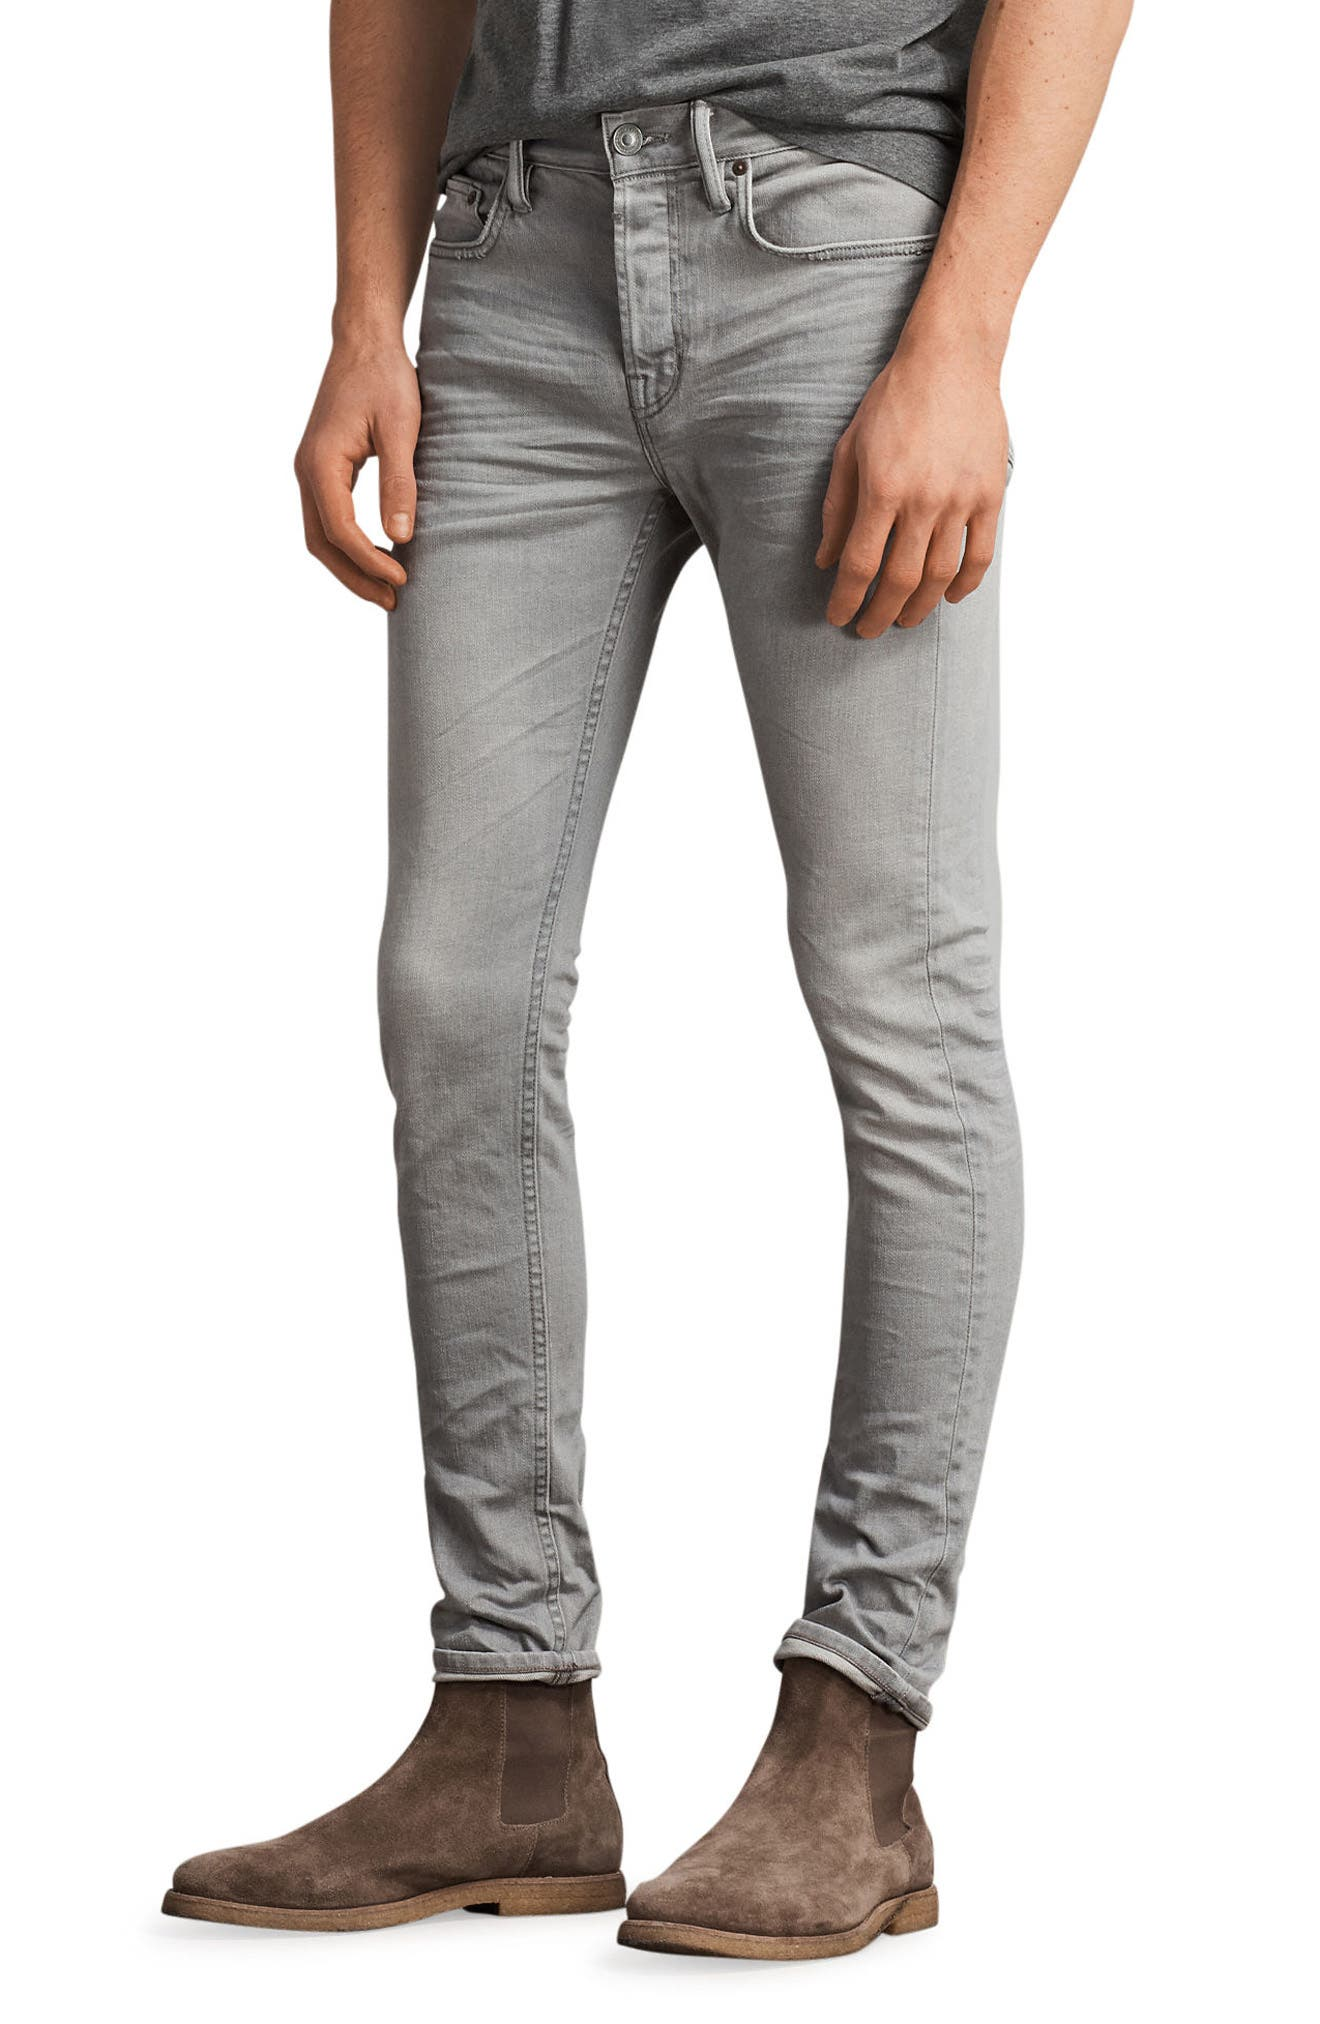 Ghoul Skinny Fit Jeans,                         Main,                         color, 033